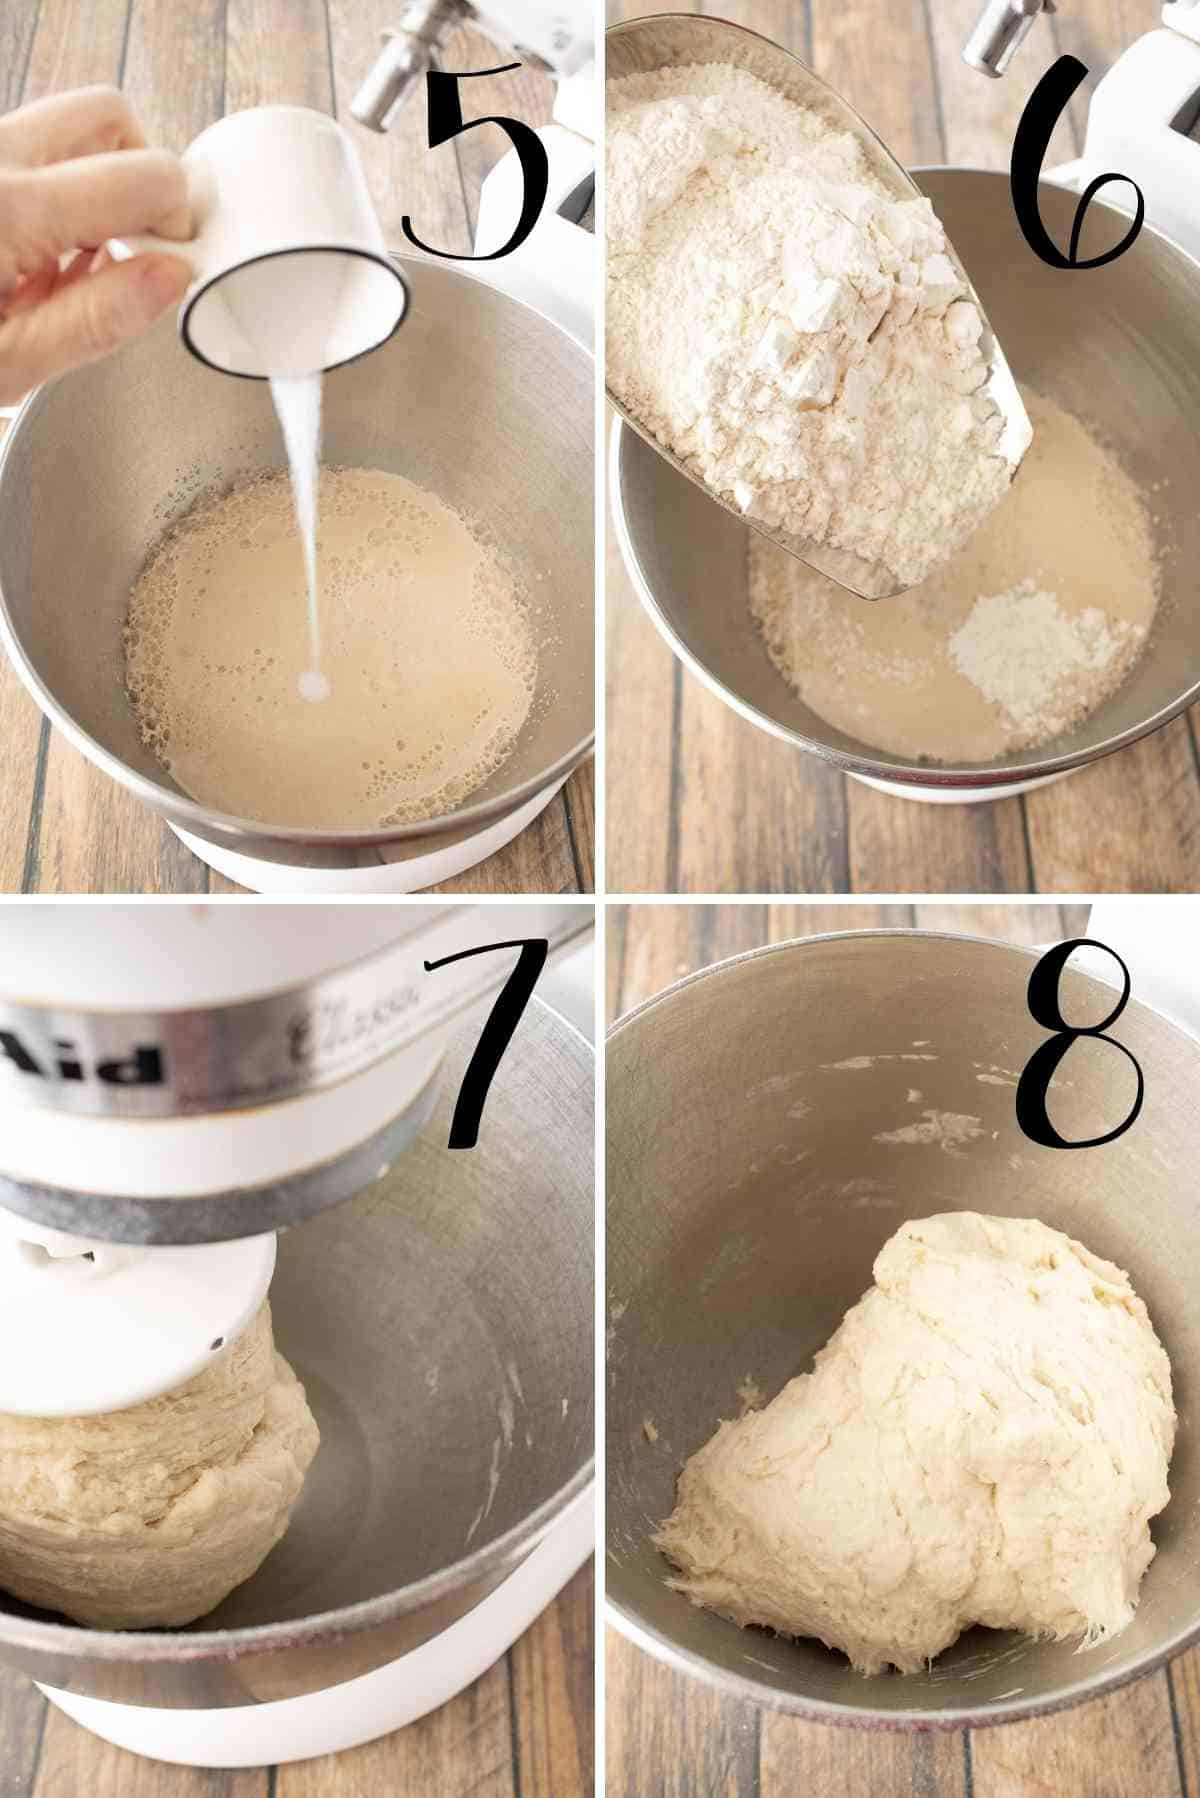 Salt and flour added to make a dough to let rise.